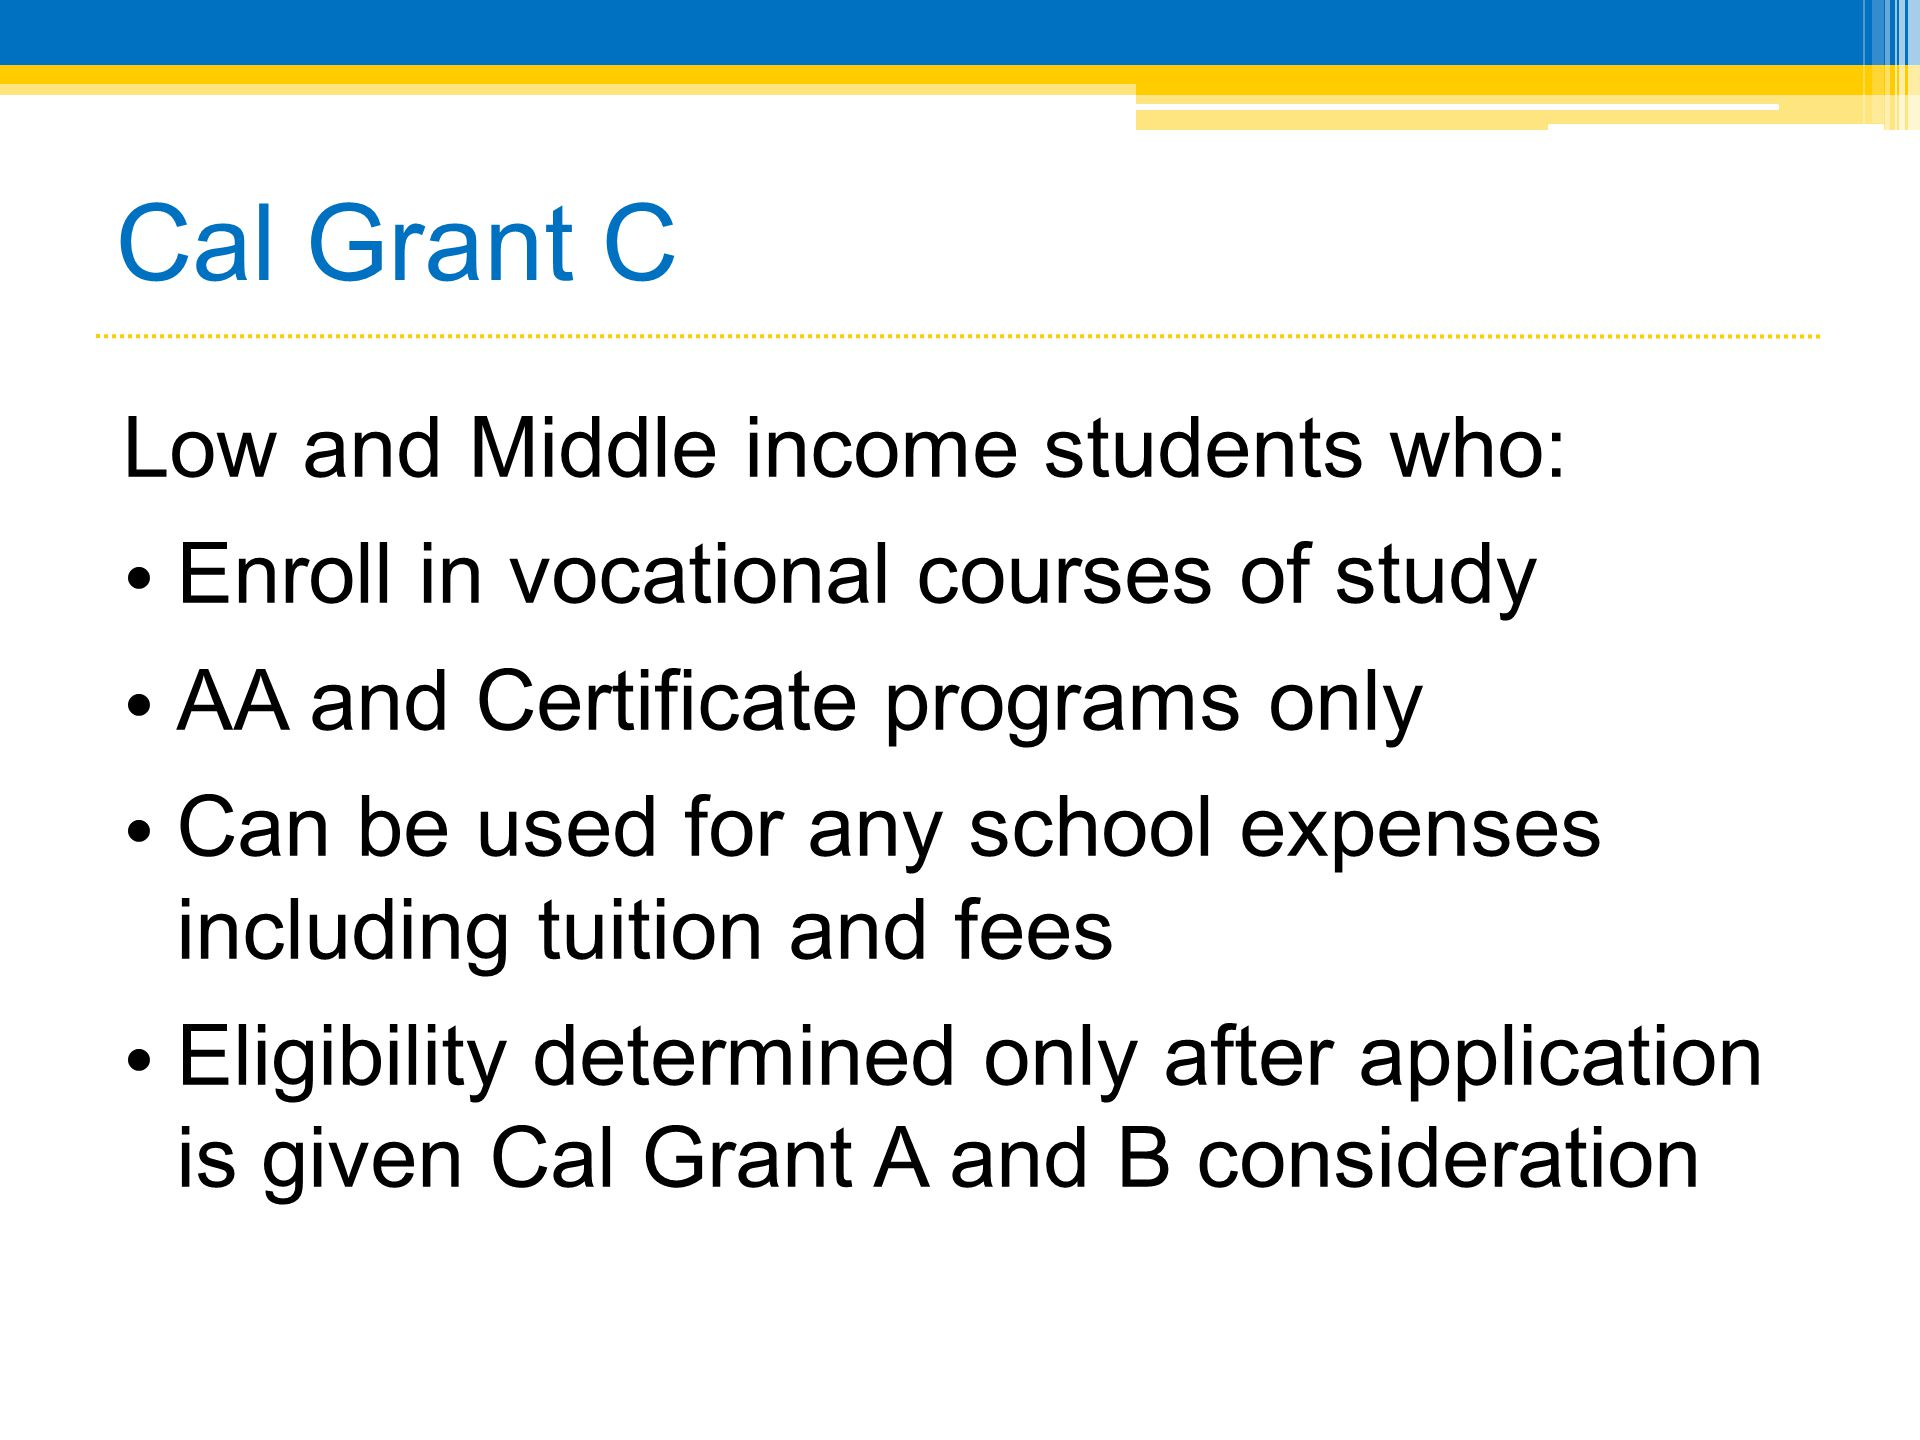 Cal Grant C Low and Middle income students who: